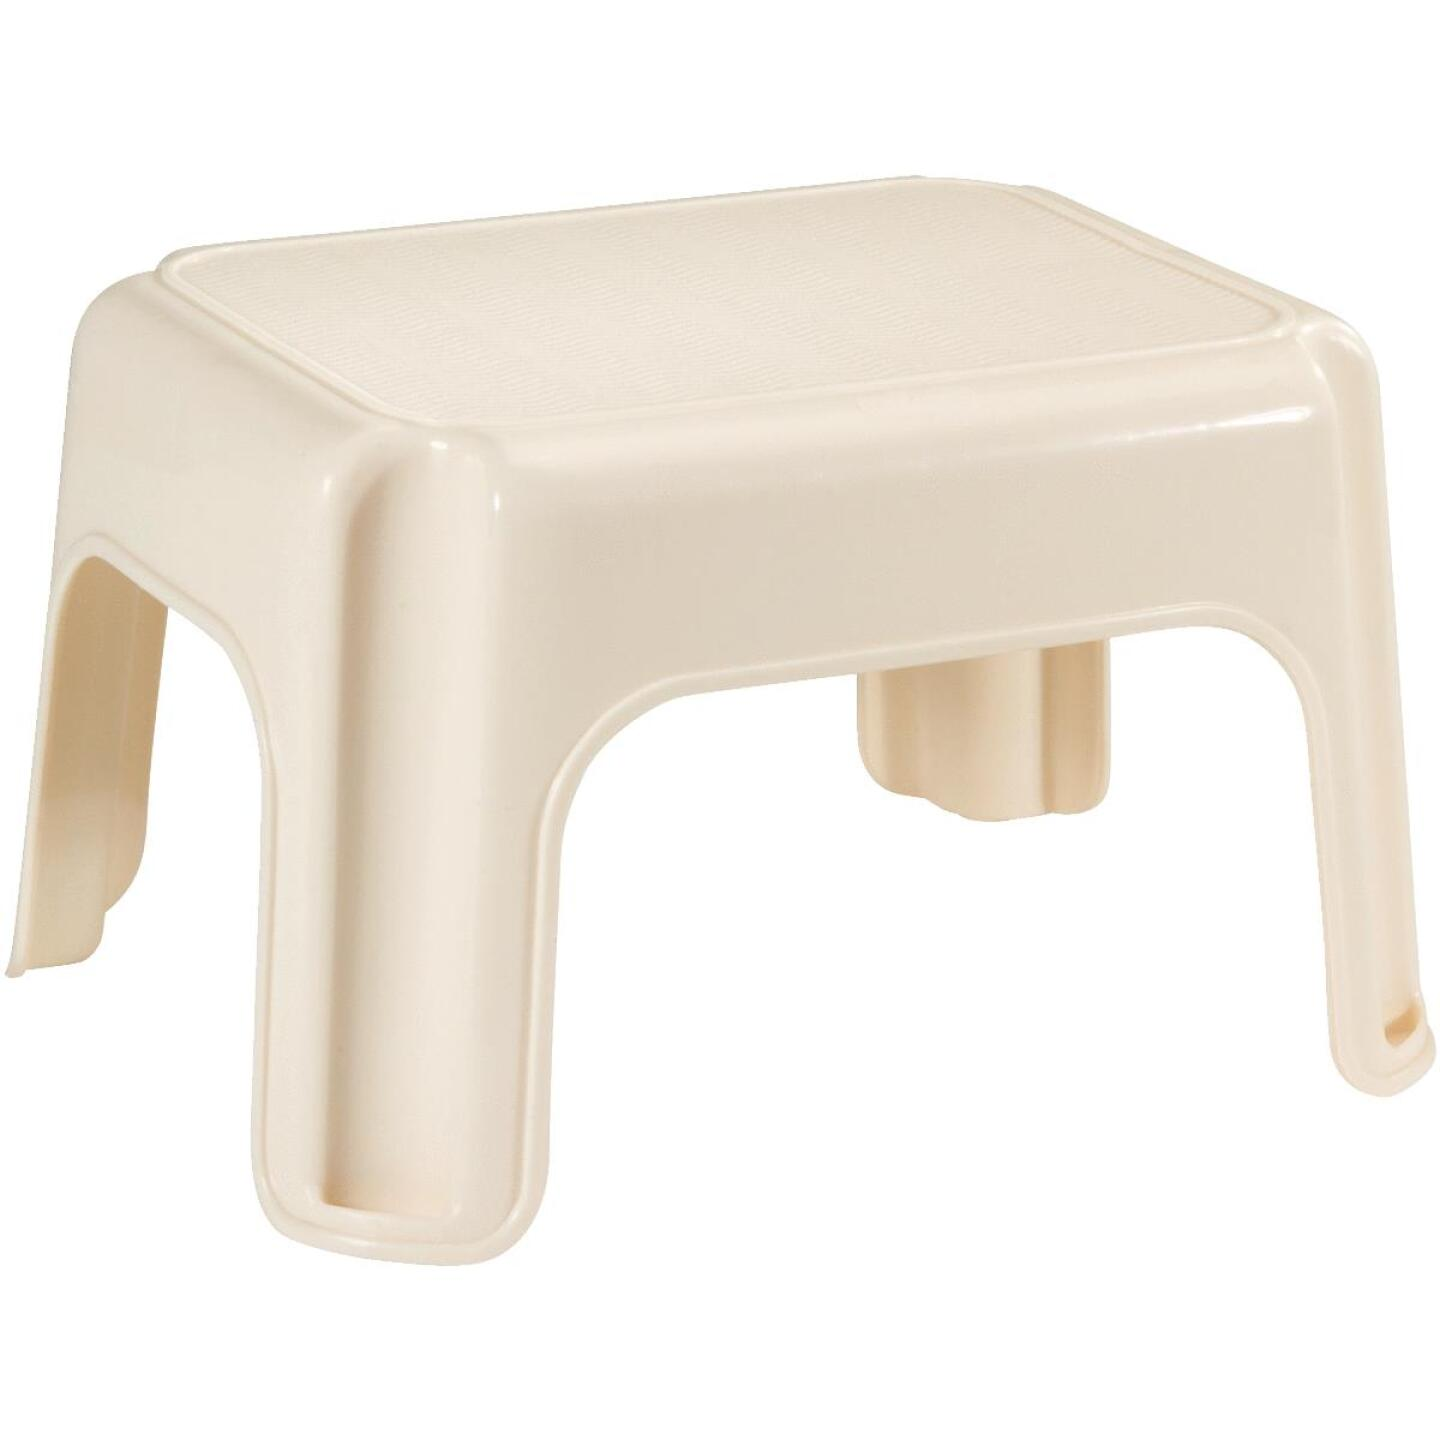 Rubbermaid Bisque 1-Step Stool Image 1